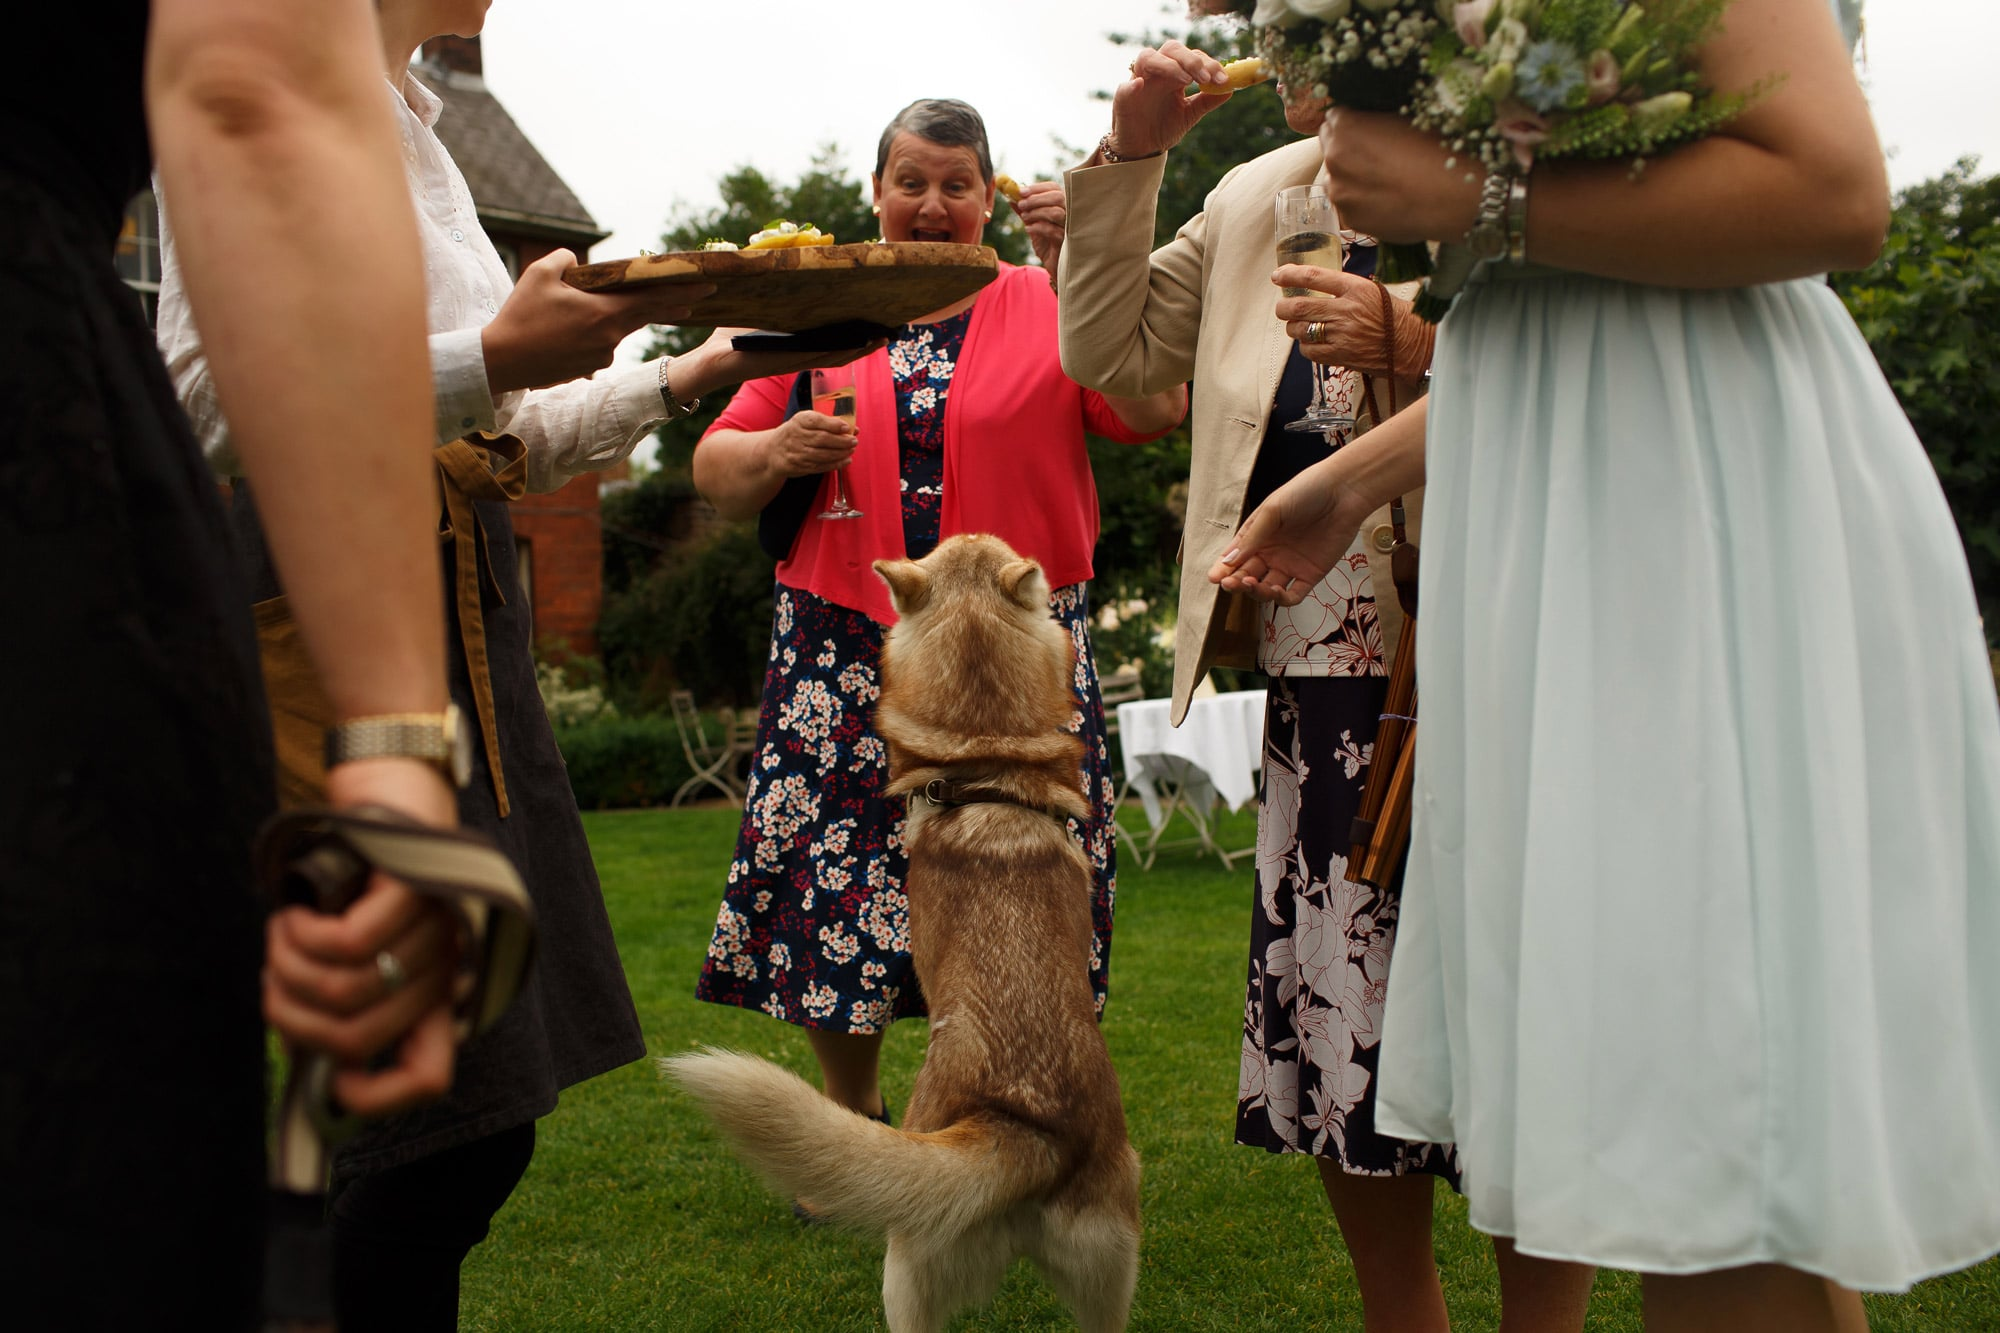 Dog jumping up at wedding guests to eat canapes during wedding reception at grays court wedding